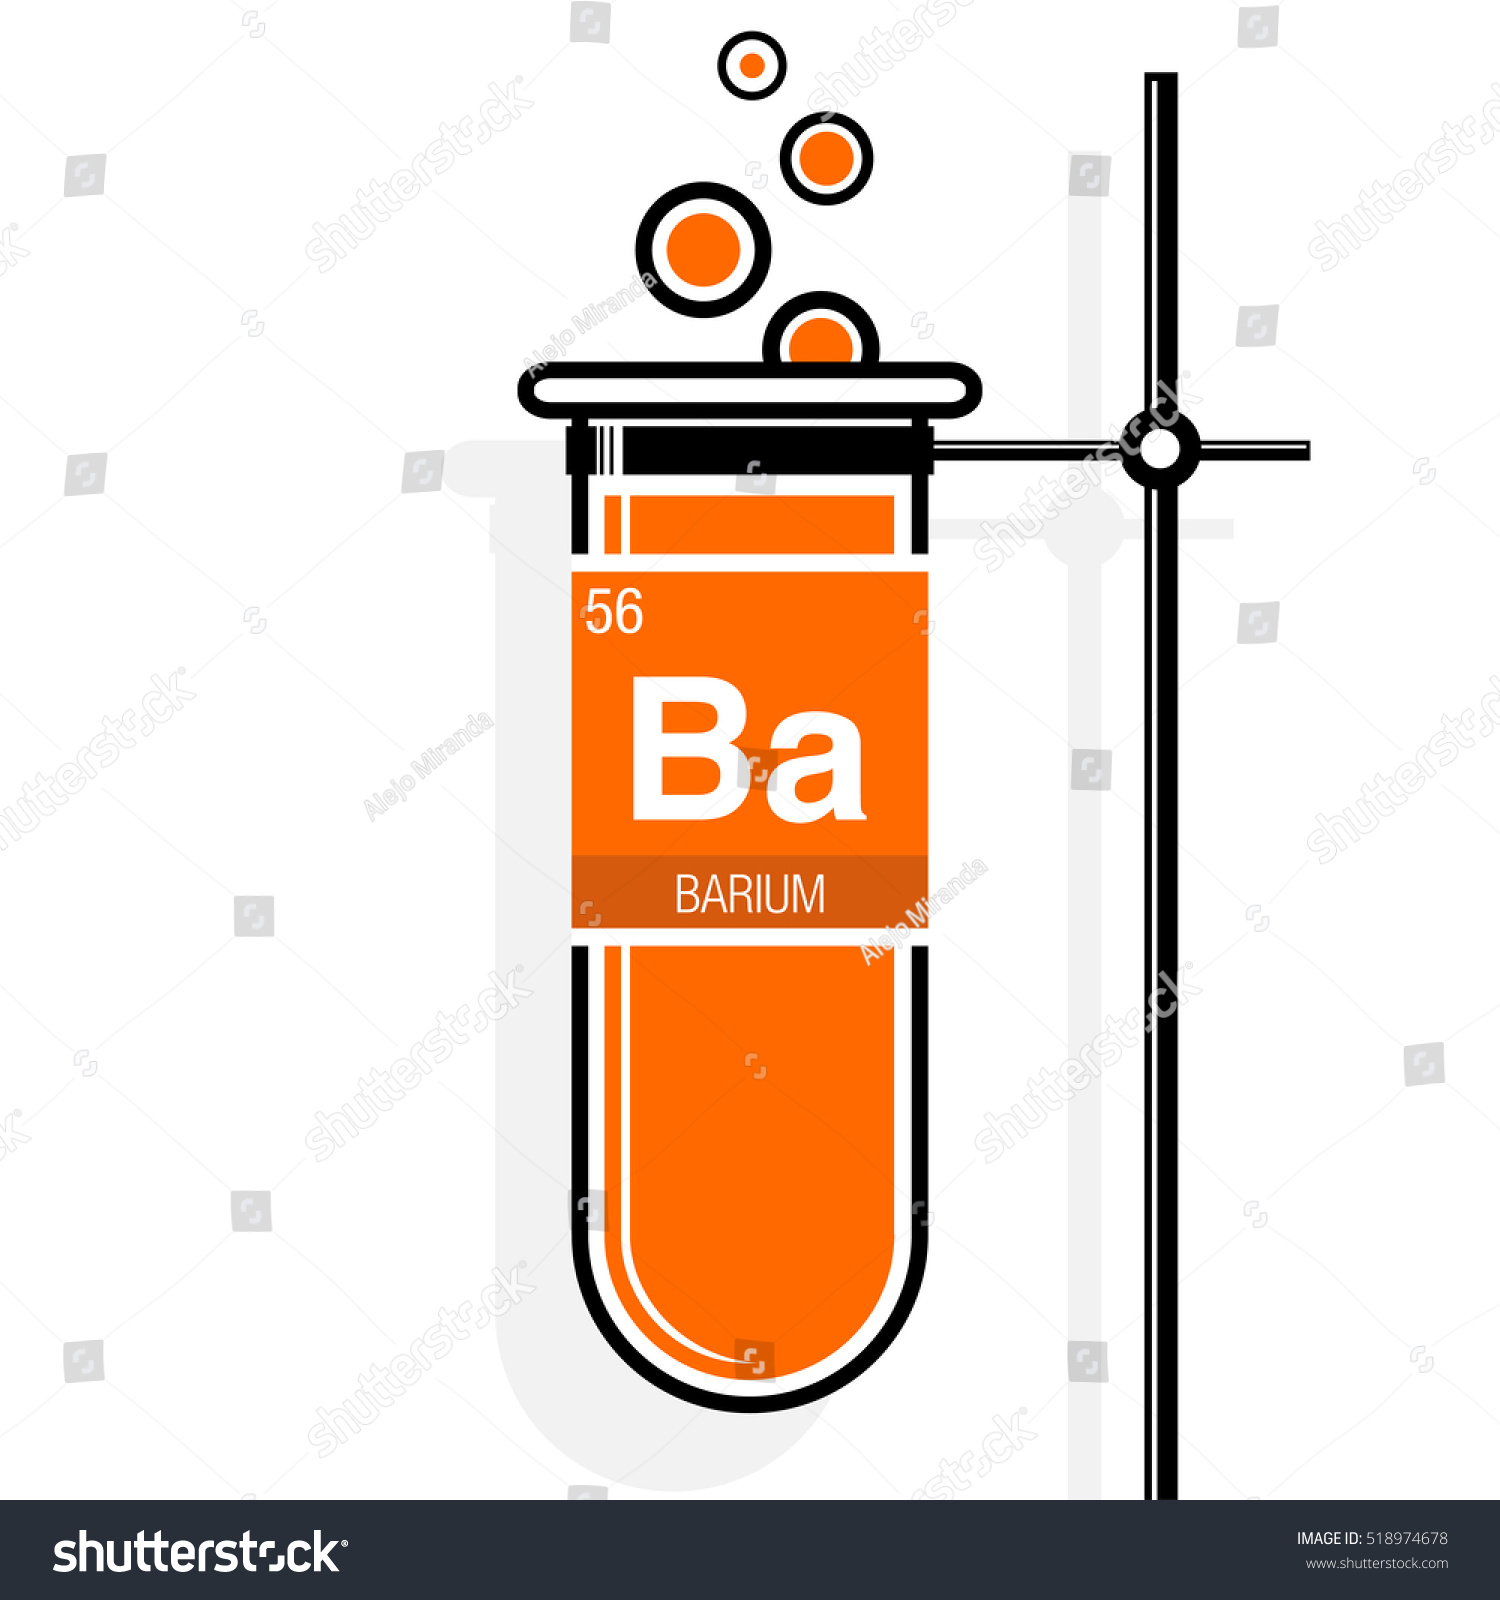 Barium symbol on label orange test stock vector 518974678 barium symbol on label in a orange test tube with holder element number 56 of gamestrikefo Gallery